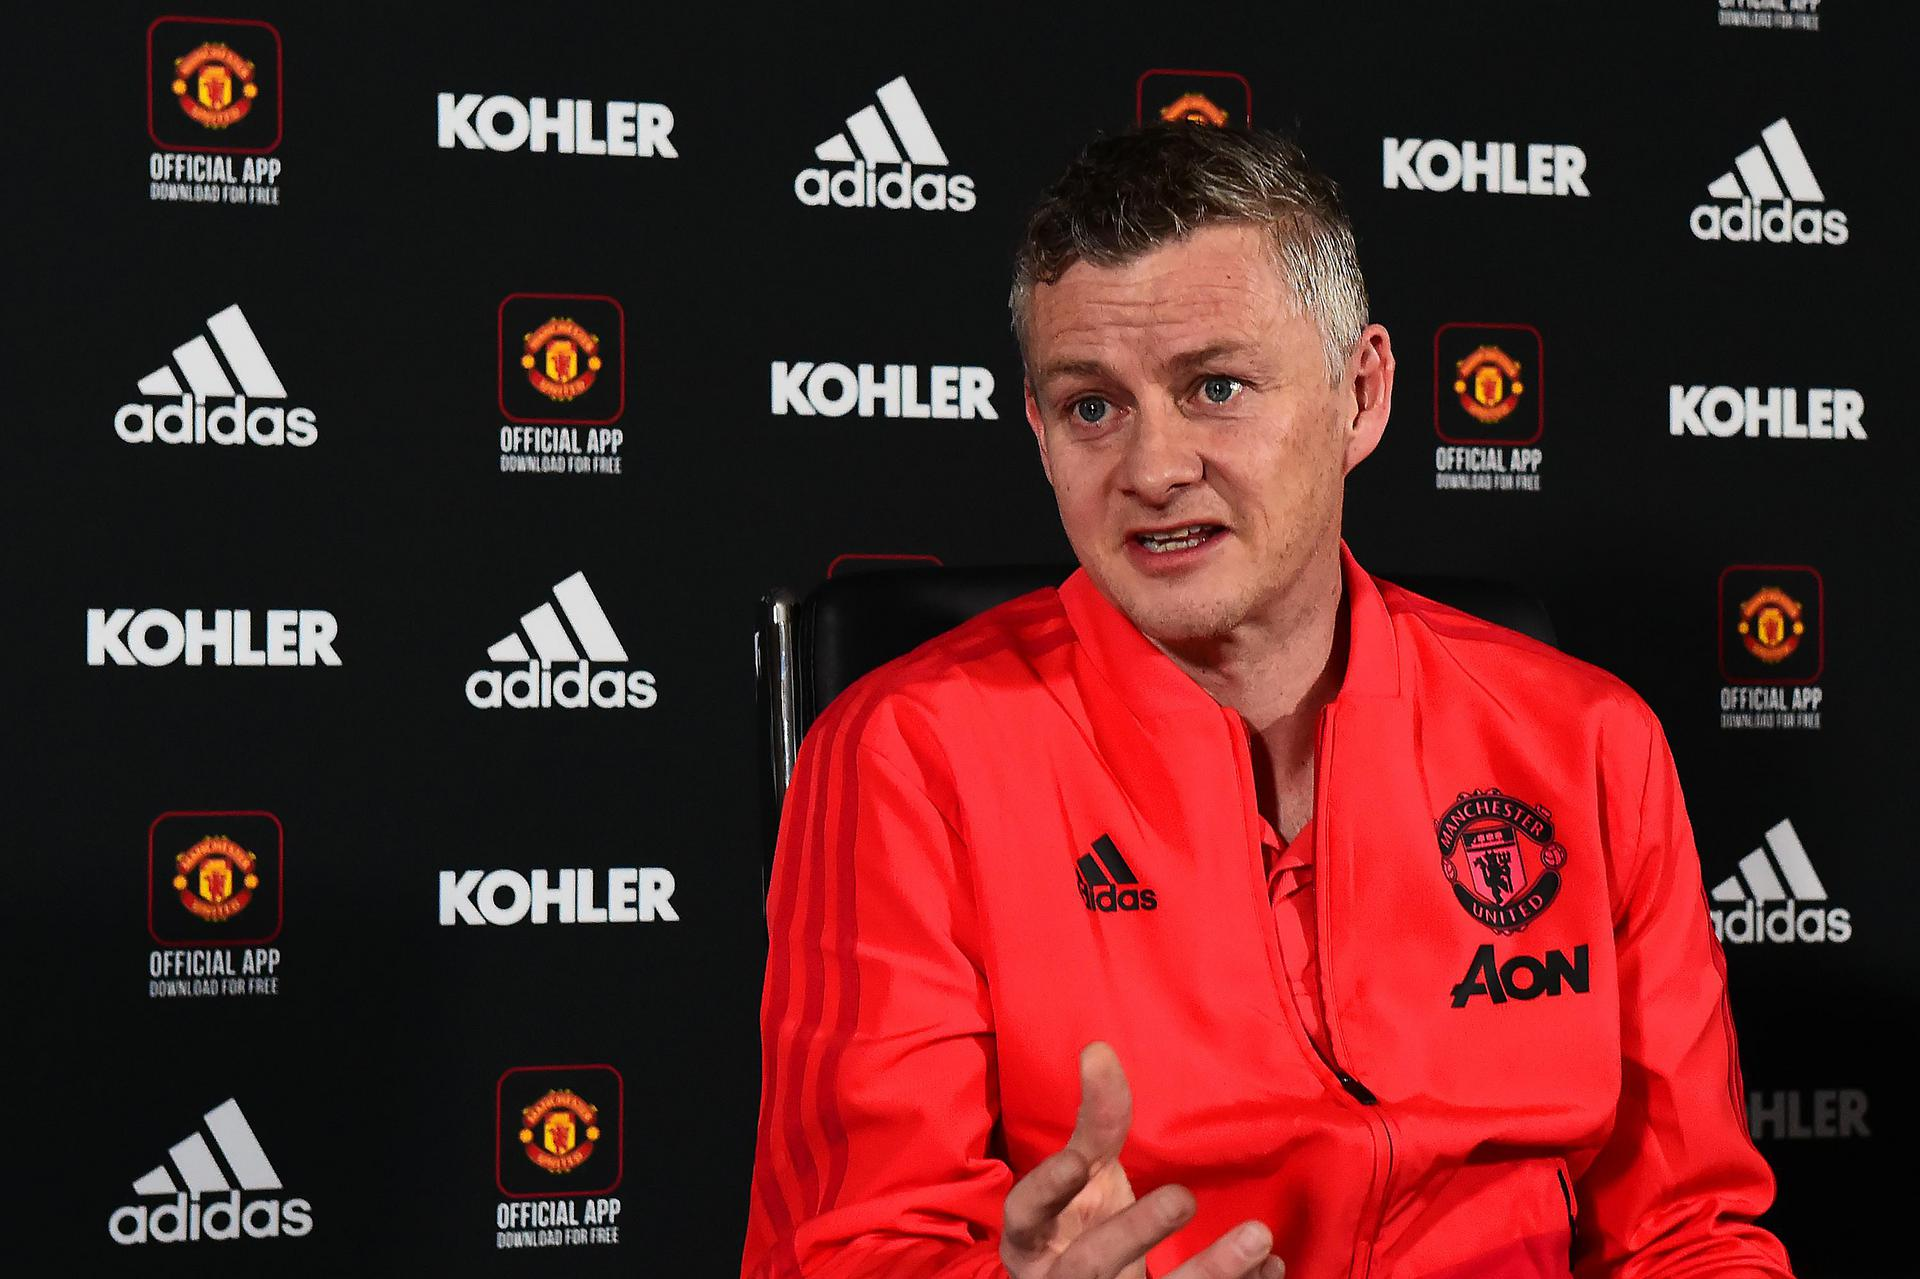 Ole Gunnar Solskjaer speaks at a press conference.